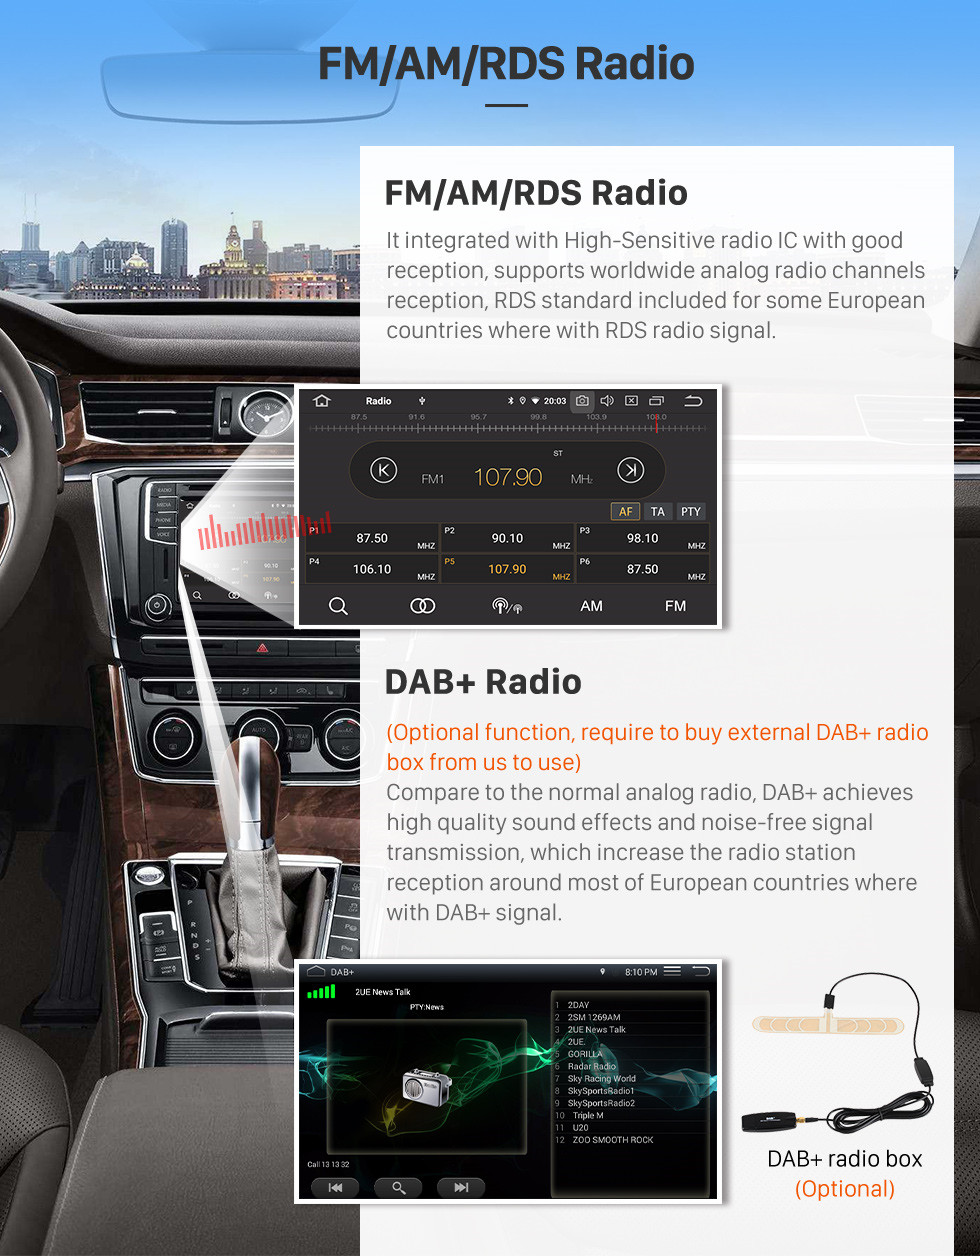 Seicane 8 inch Android 9.0 Radio IPS Full Screen GPS Navigation Car Multimedia Player for 2002-2008 Mercedes Benz E W211 E200 E220 E230 E240 E270 E280 E300 E320 with RDS 3G WiFi Bluetooth Mirror Link OBD2 Steering Wheel Control